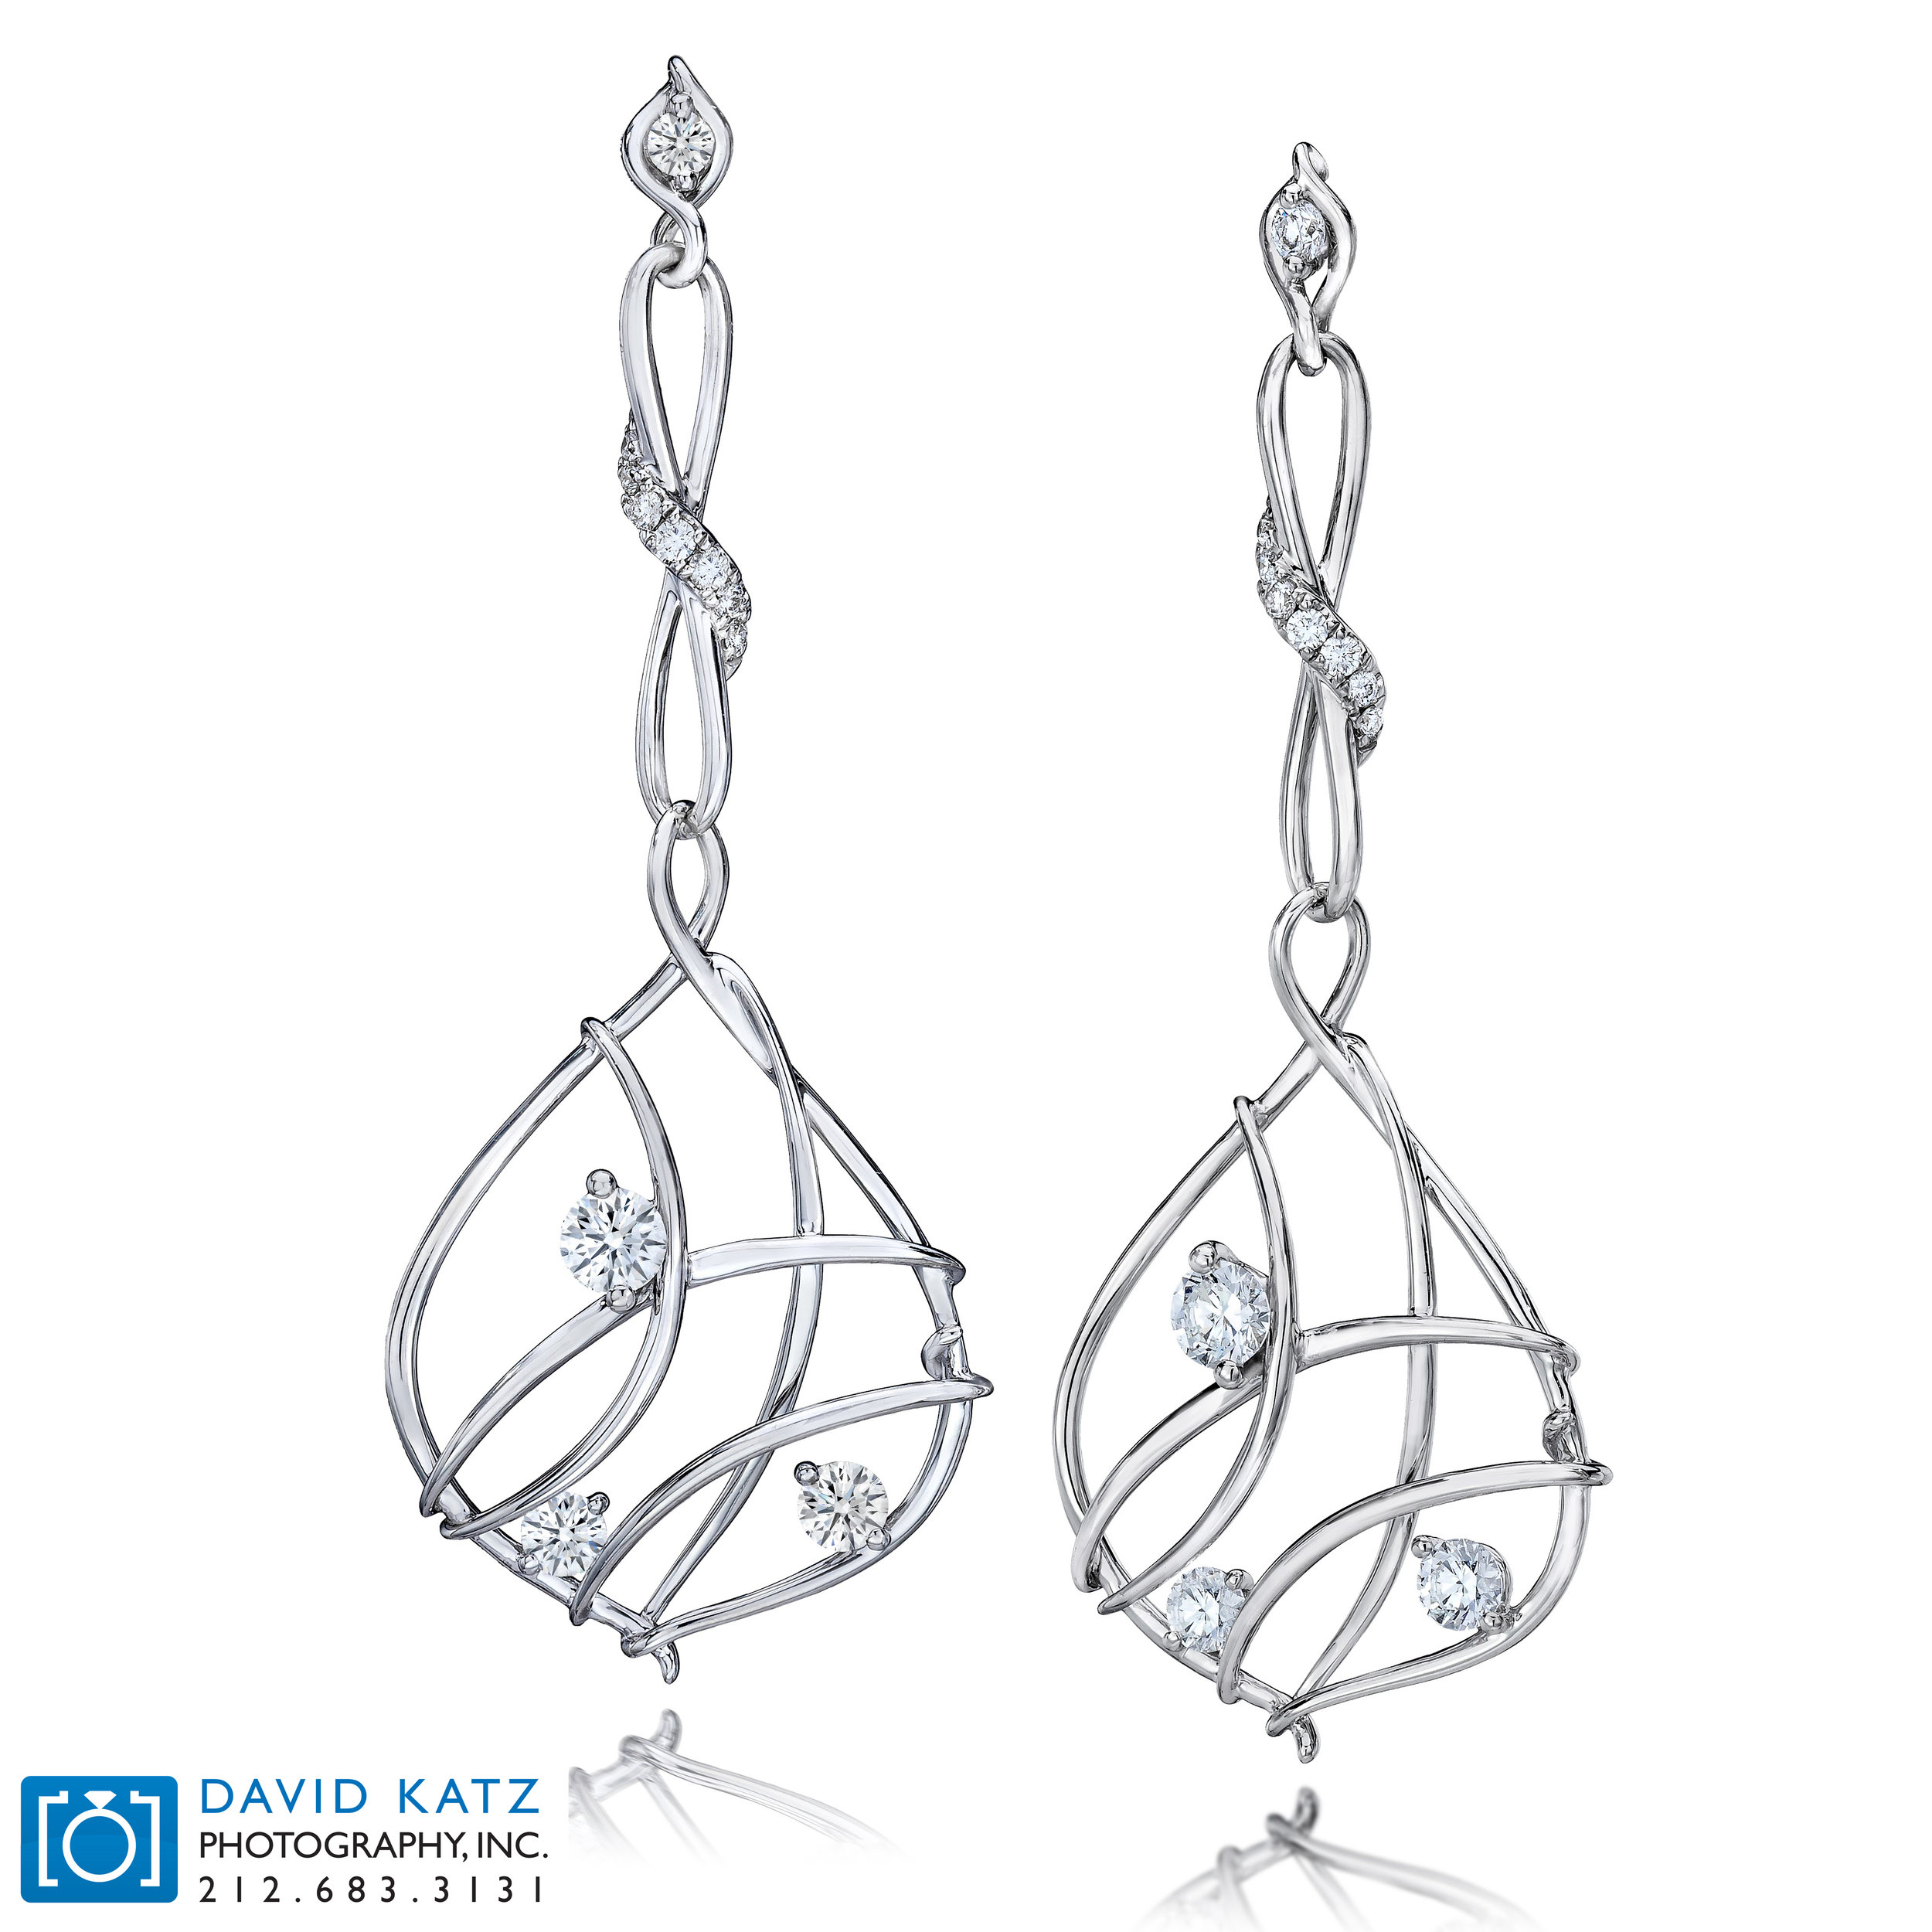 platinum white gold silver diamond earrings_NEWLOGO.jpg